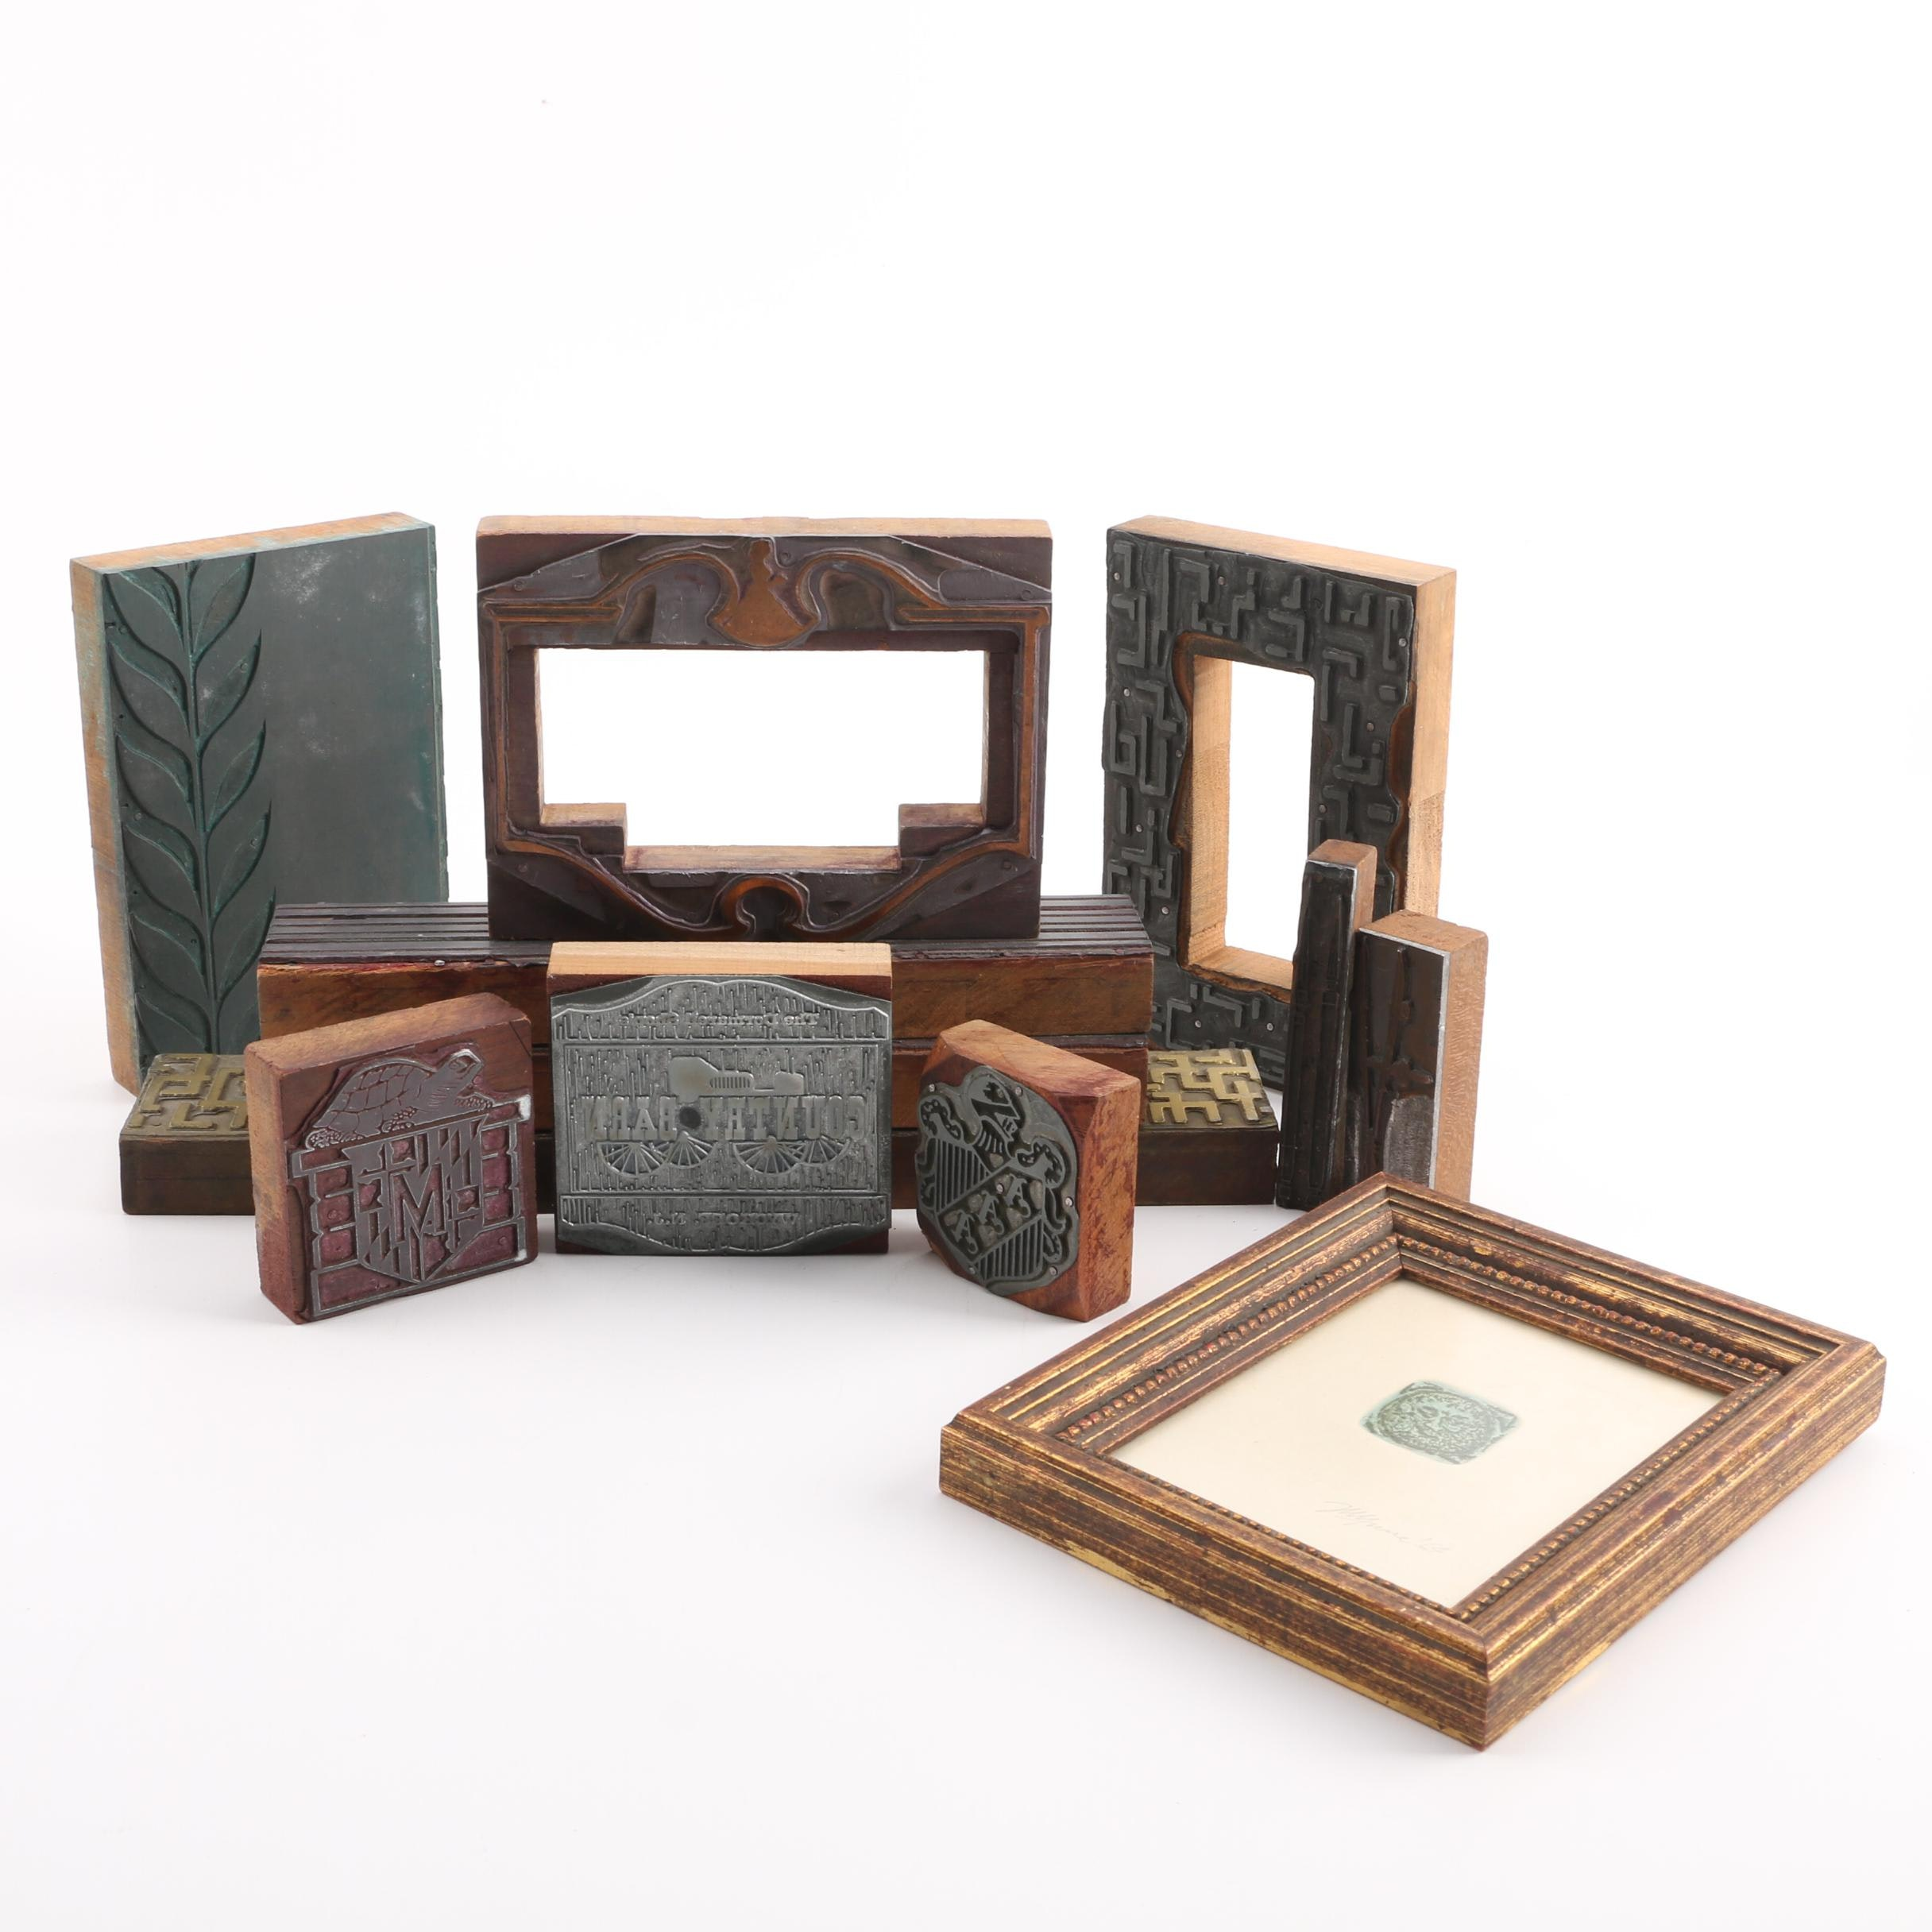 VIntage Printer's Blocks and a Picture Frame